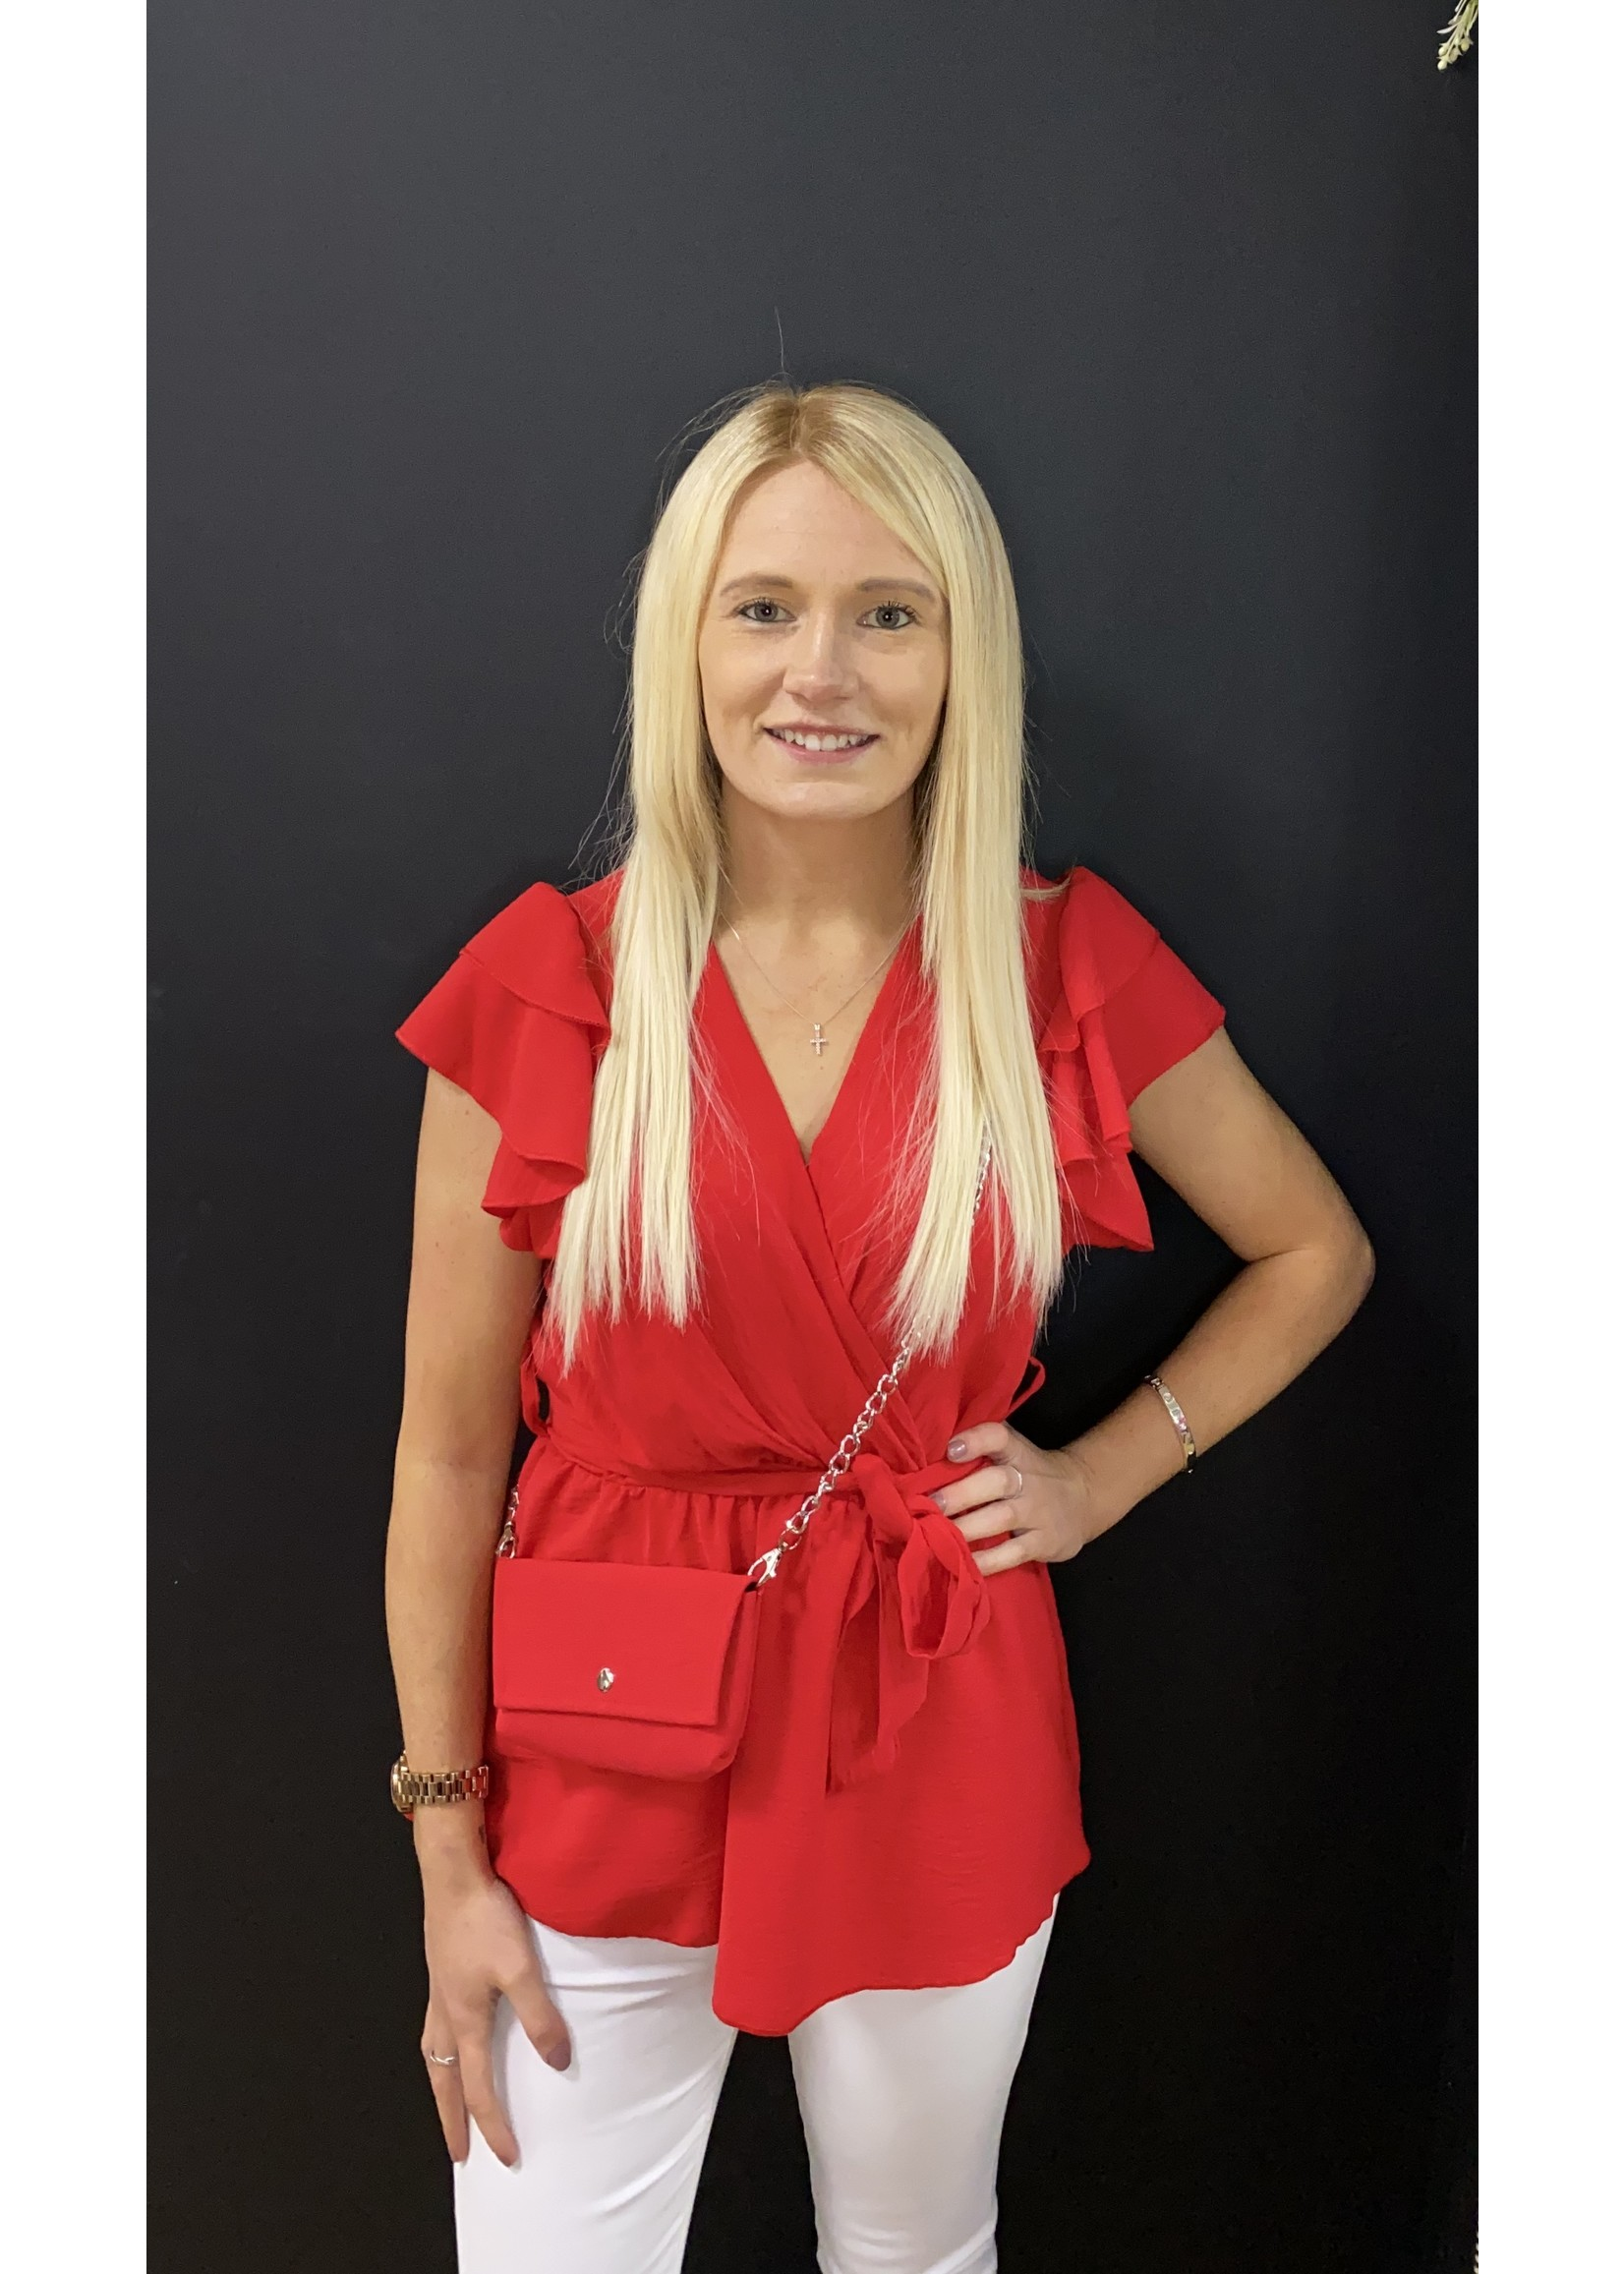 Petal crossover top with matching bag